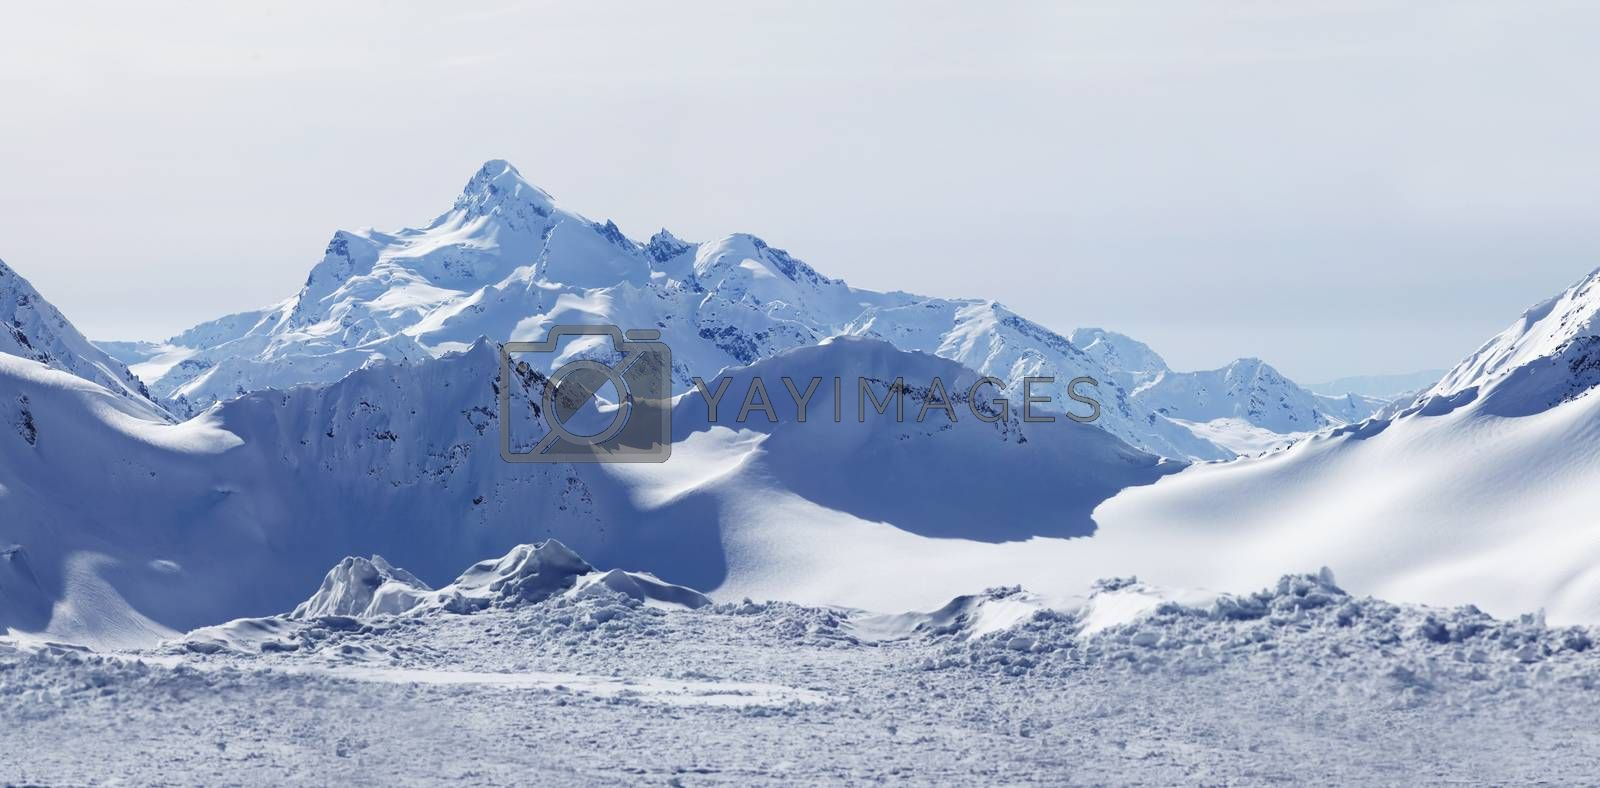 Russia. Caucasus. View on Elbrus Mount - the highest point of Europe from Cheget Mount. Panorama the review from 4 shots